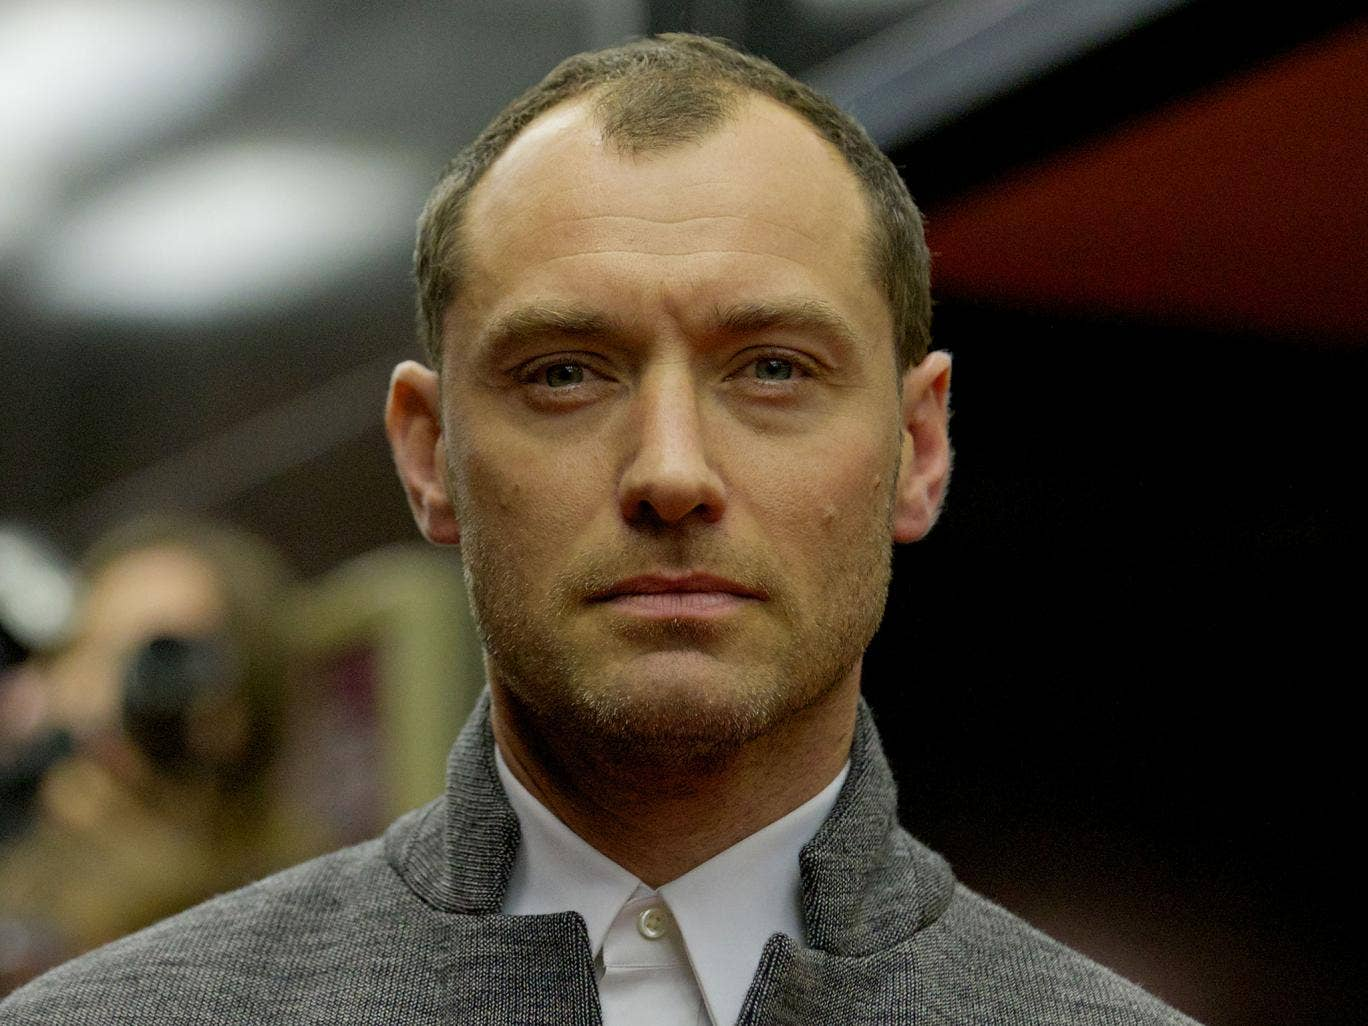 Jude Law, Benedict Cumberbatch and Idris Elba lead group urging ... Jude Law